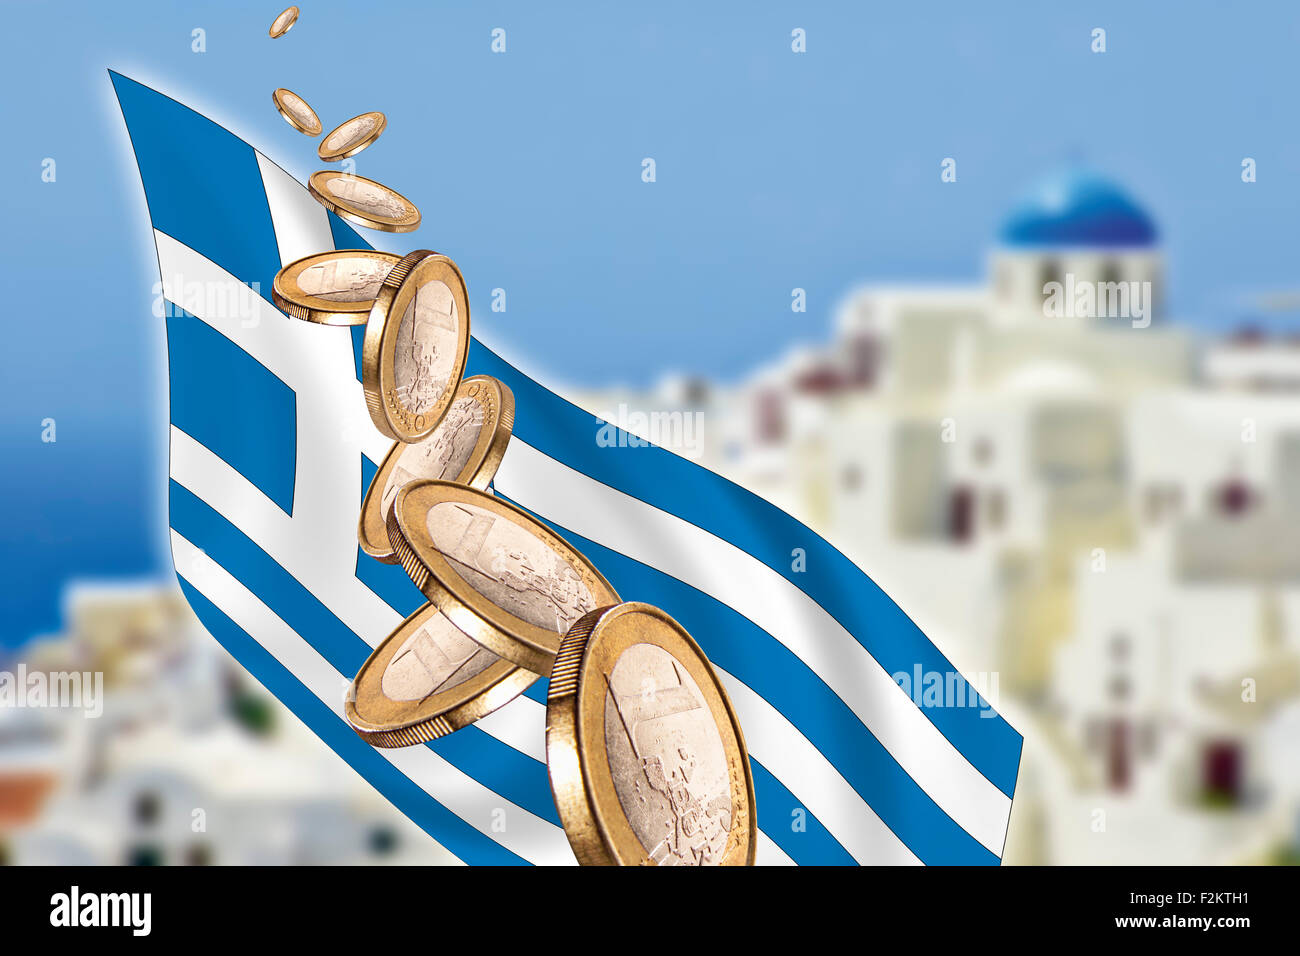 Symbolic picture, Greece, Grexit, banking crisis, Euro coins, flag, Santorini in background - Stock Image